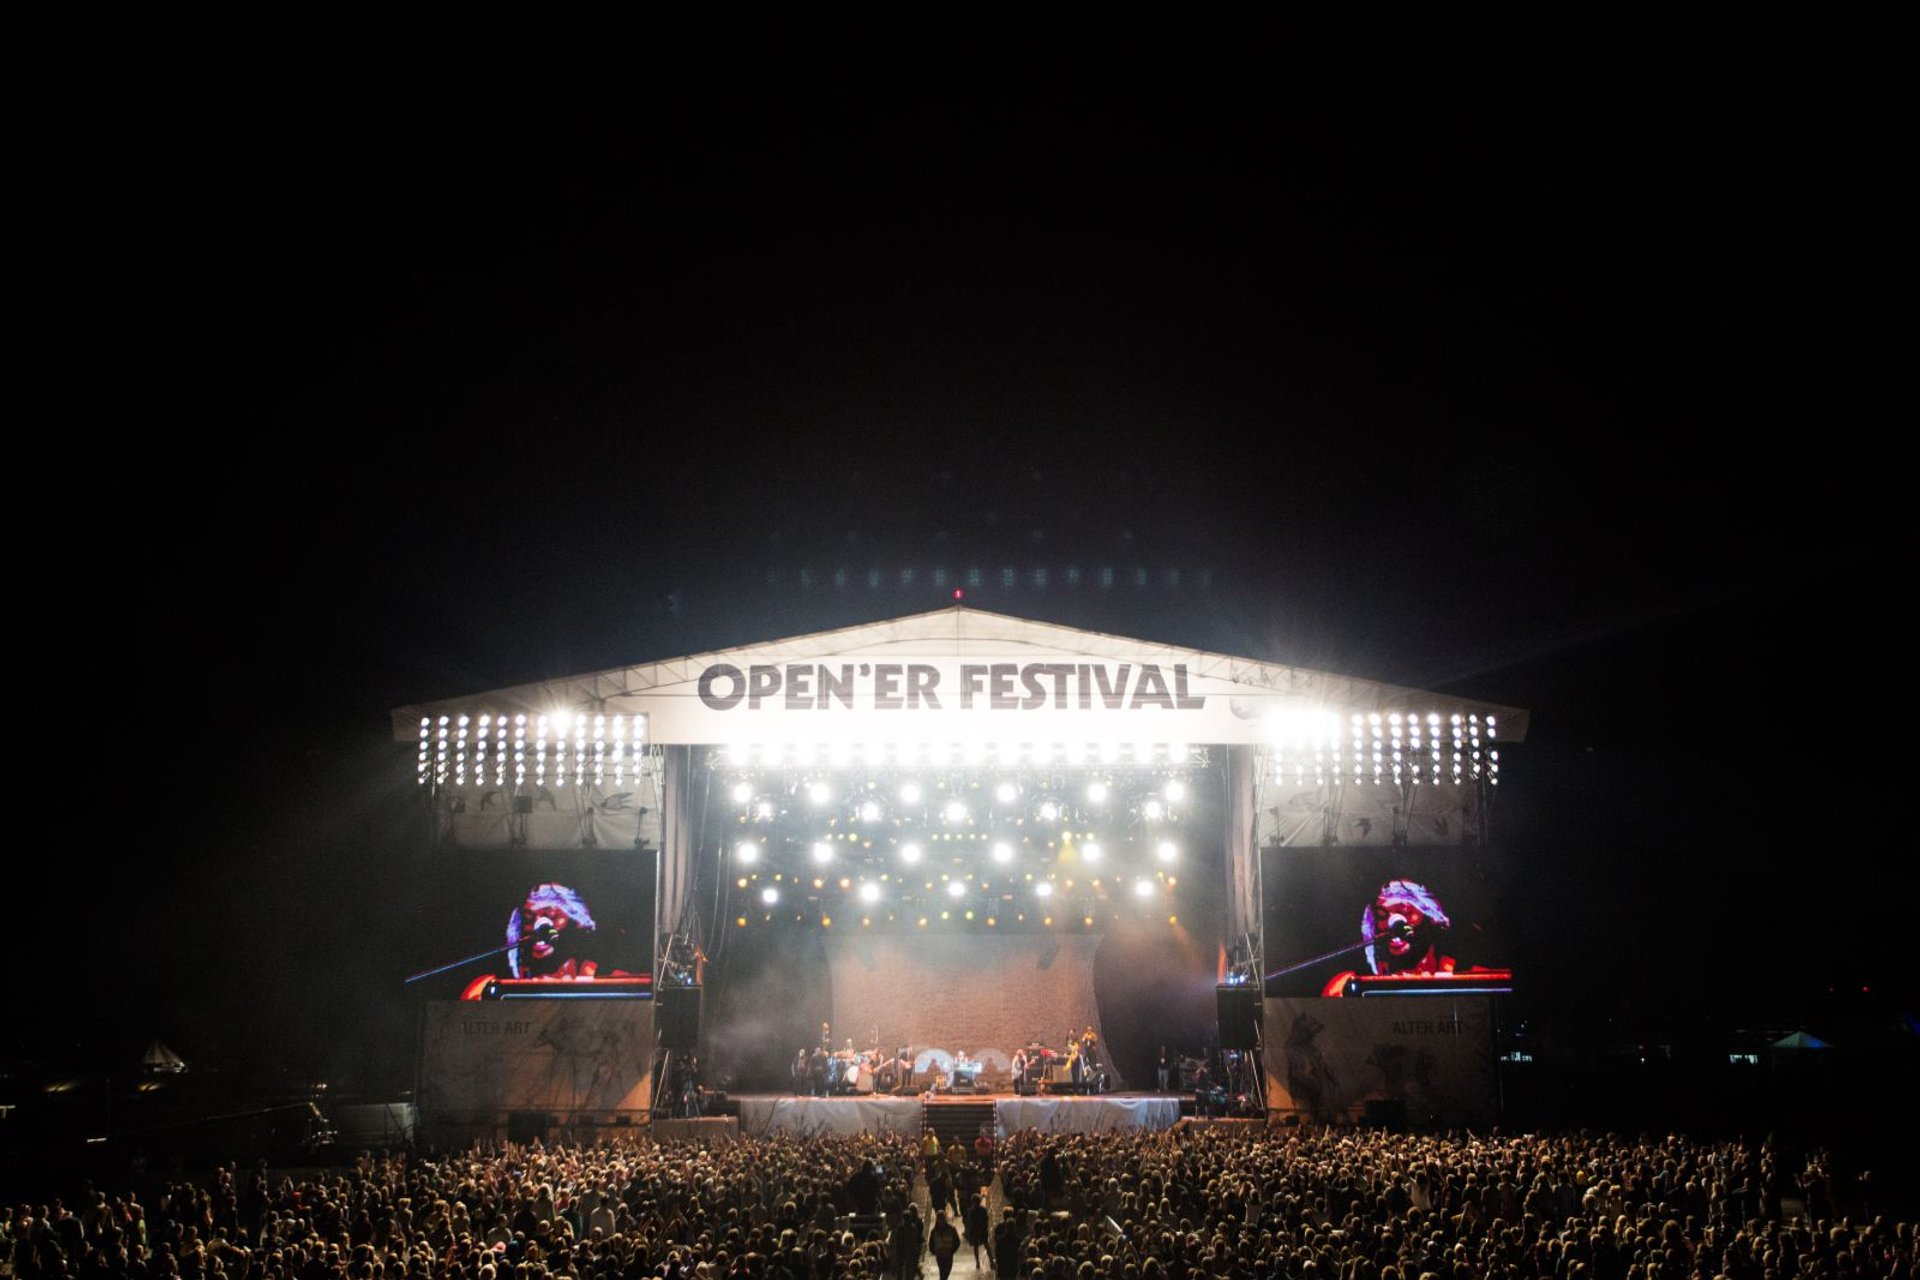 Open'er Festival in Poland - Best Season 2020